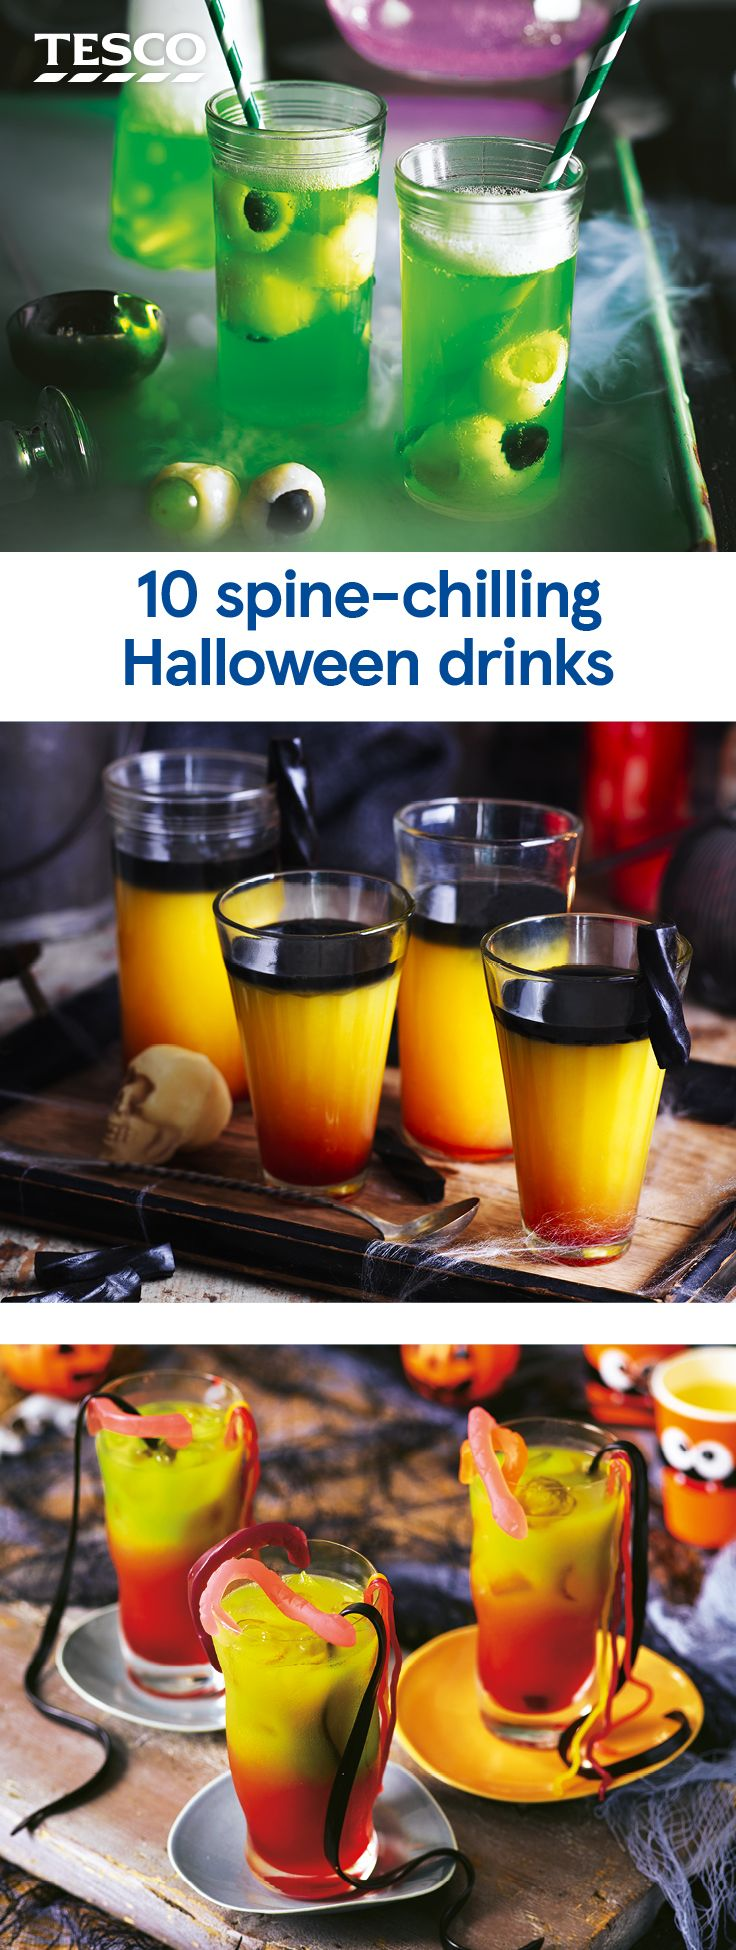 Halloween Party Cocktail Ideas Part - 47: Planning A Halloween Party? Get Halloween Drinks Ideas With Our 10  Spine-chilling Drinks Recipes For Creepy Cocktails, Spooky Smoothies And  More.